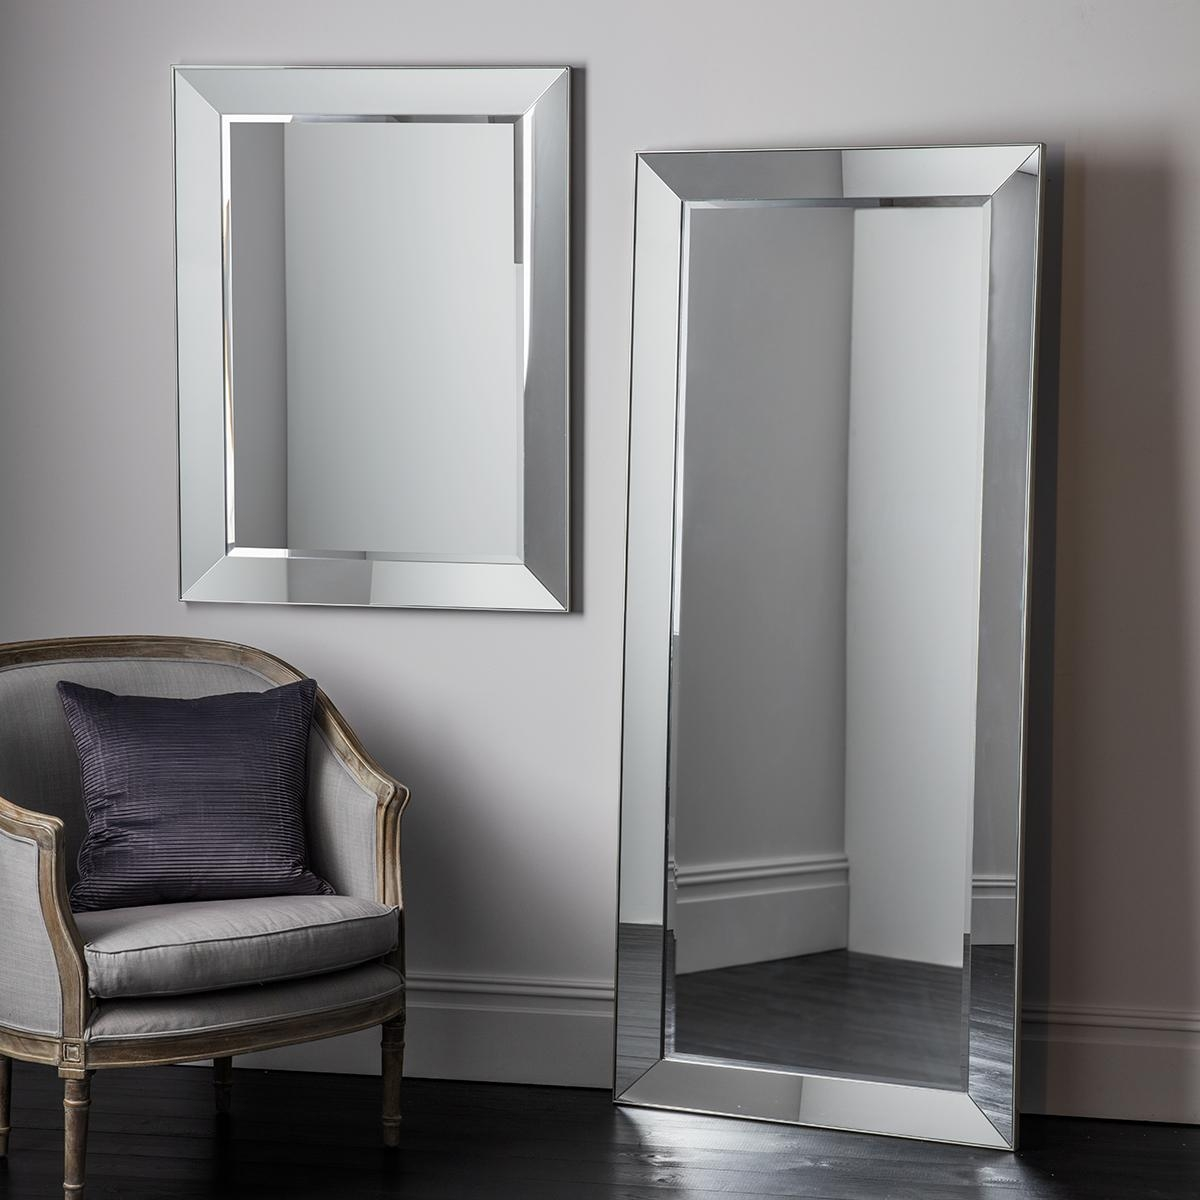 Big Silver Framed Mirror | Vanity Decoration Intended For Big Silver Mirror (Image 4 of 20)